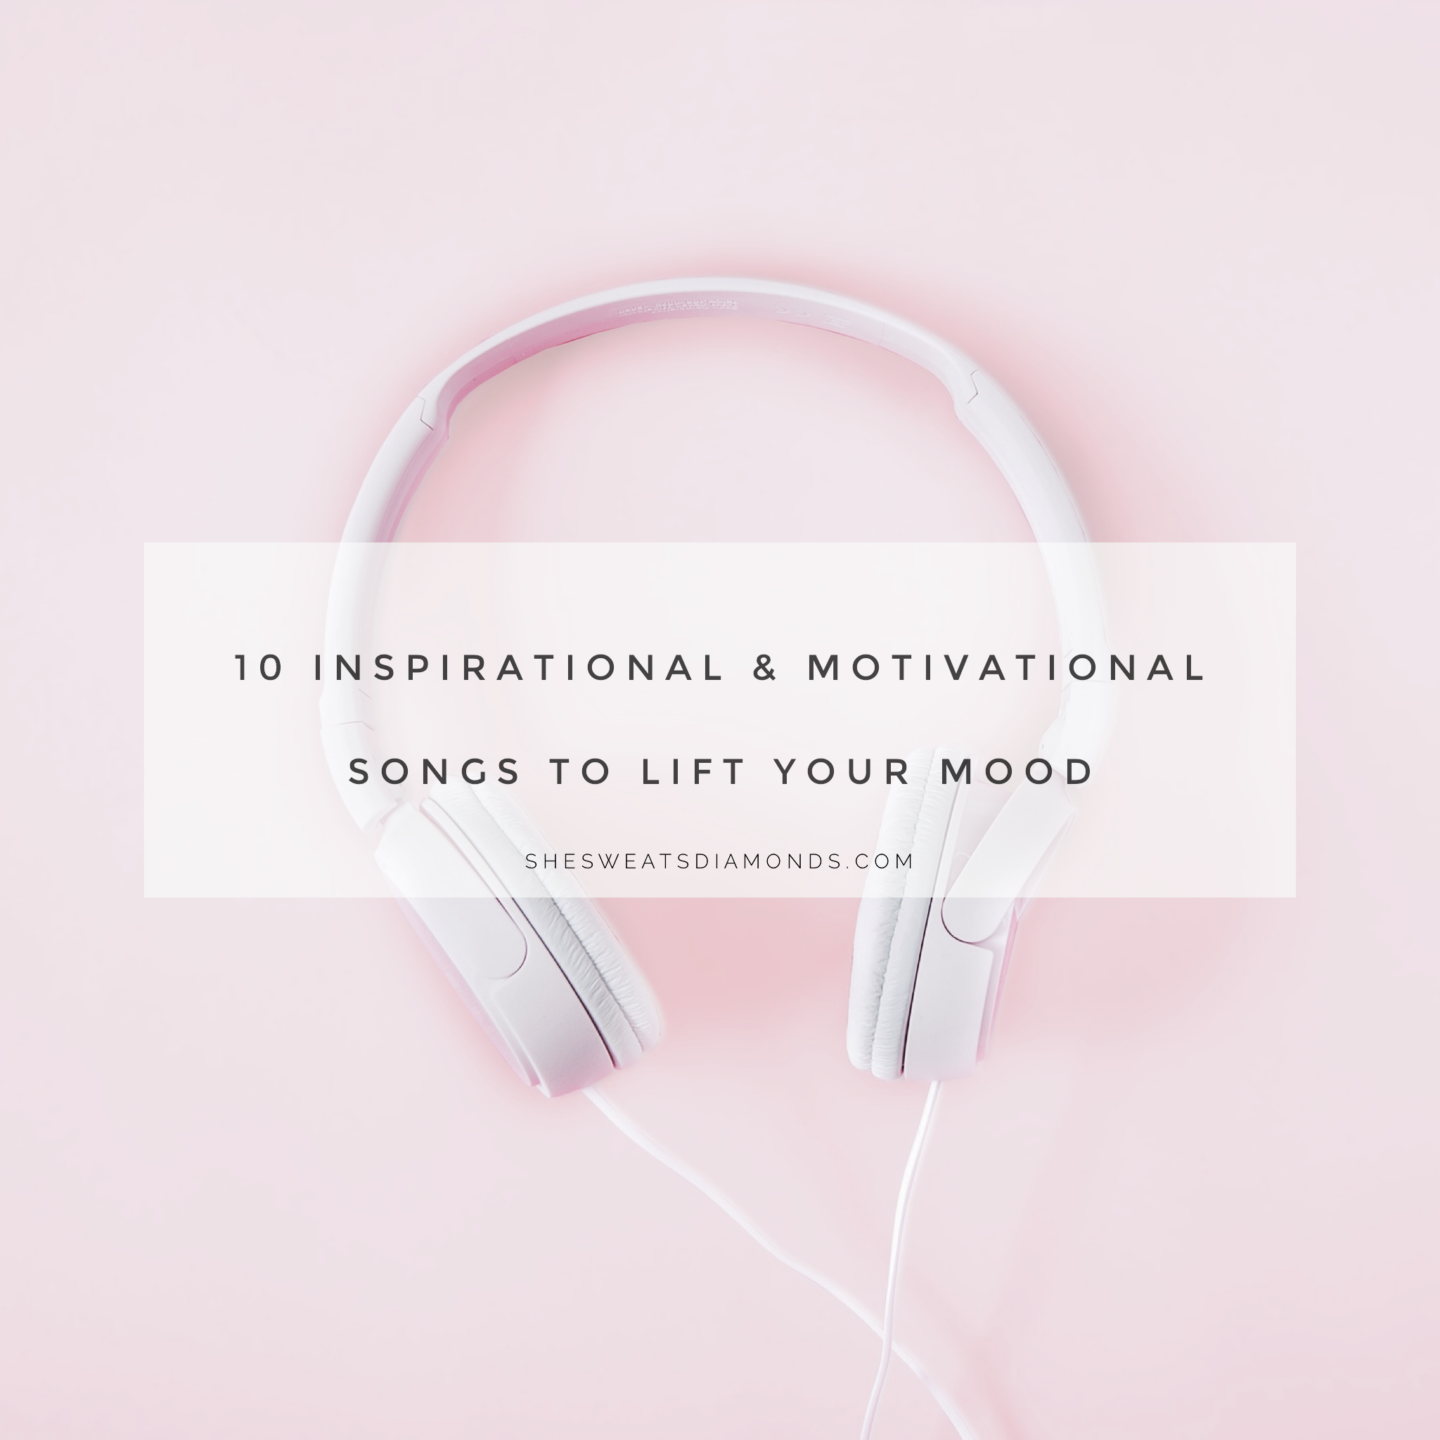 10 Inspirational Amp Motivational Songs To Lift Your Mood